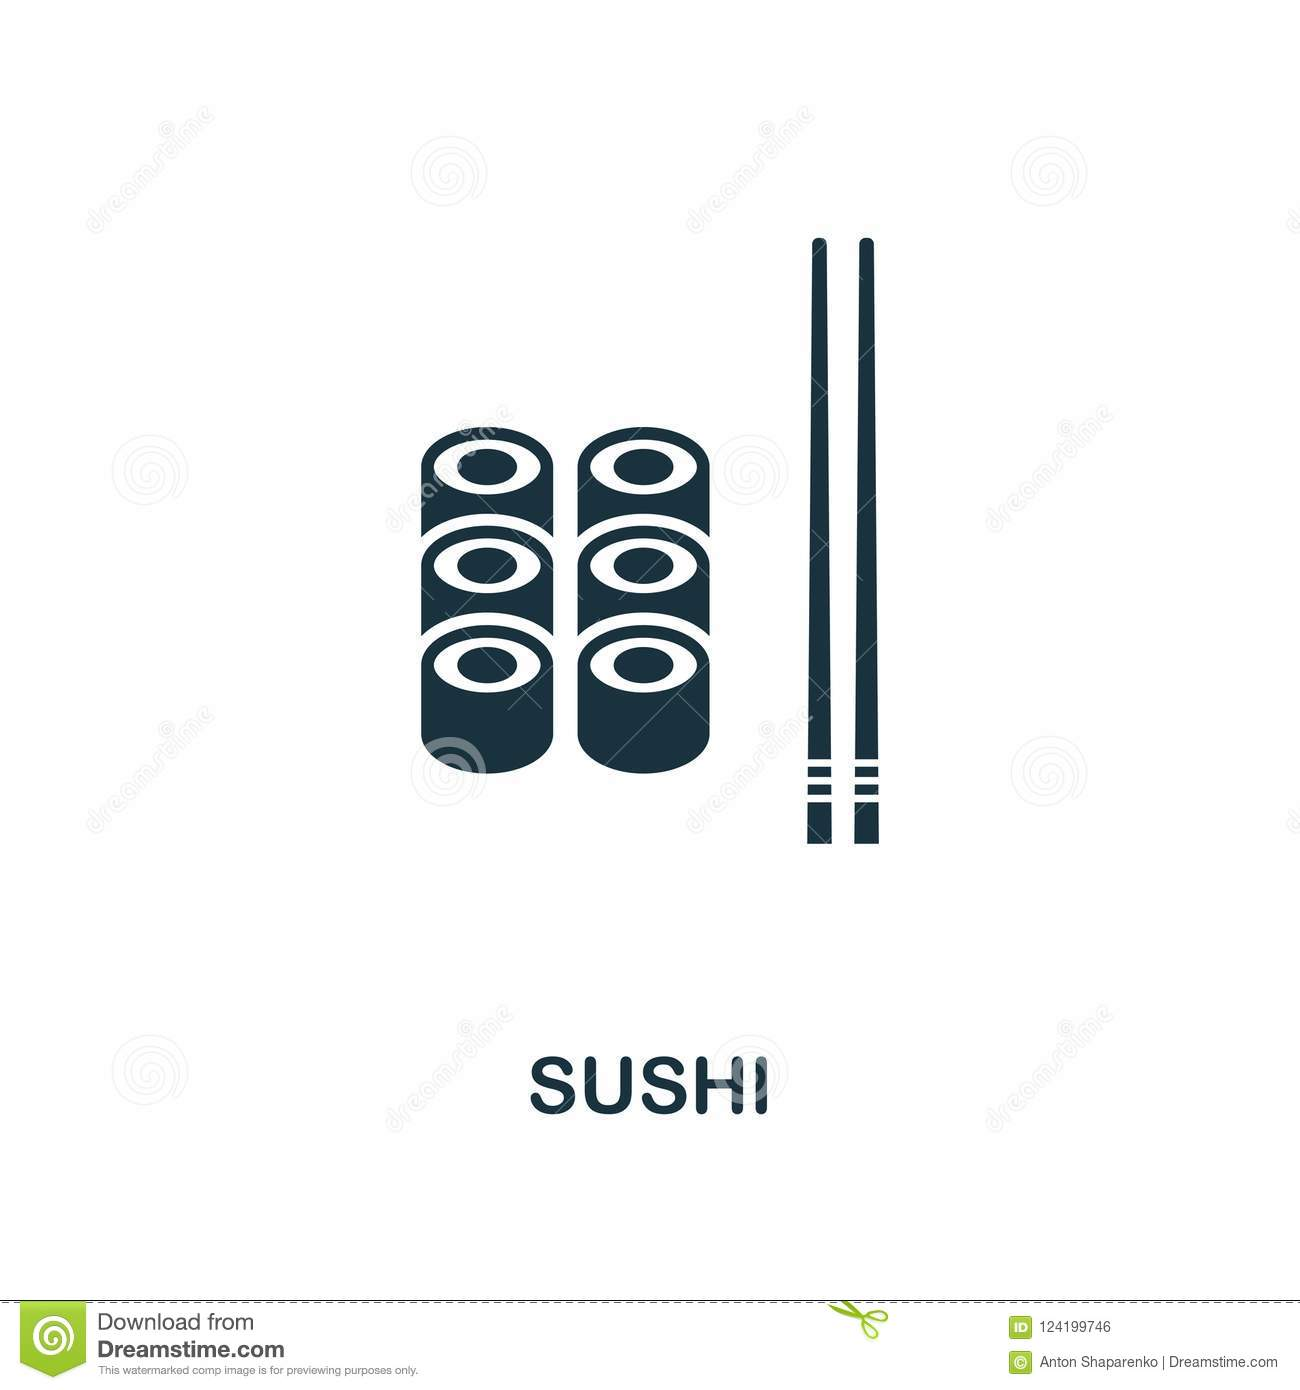 Sushi icon. Monochrome style icon design from meal icon collection. UI. Illustration of sushi icon. Pictogram isolated on white. R